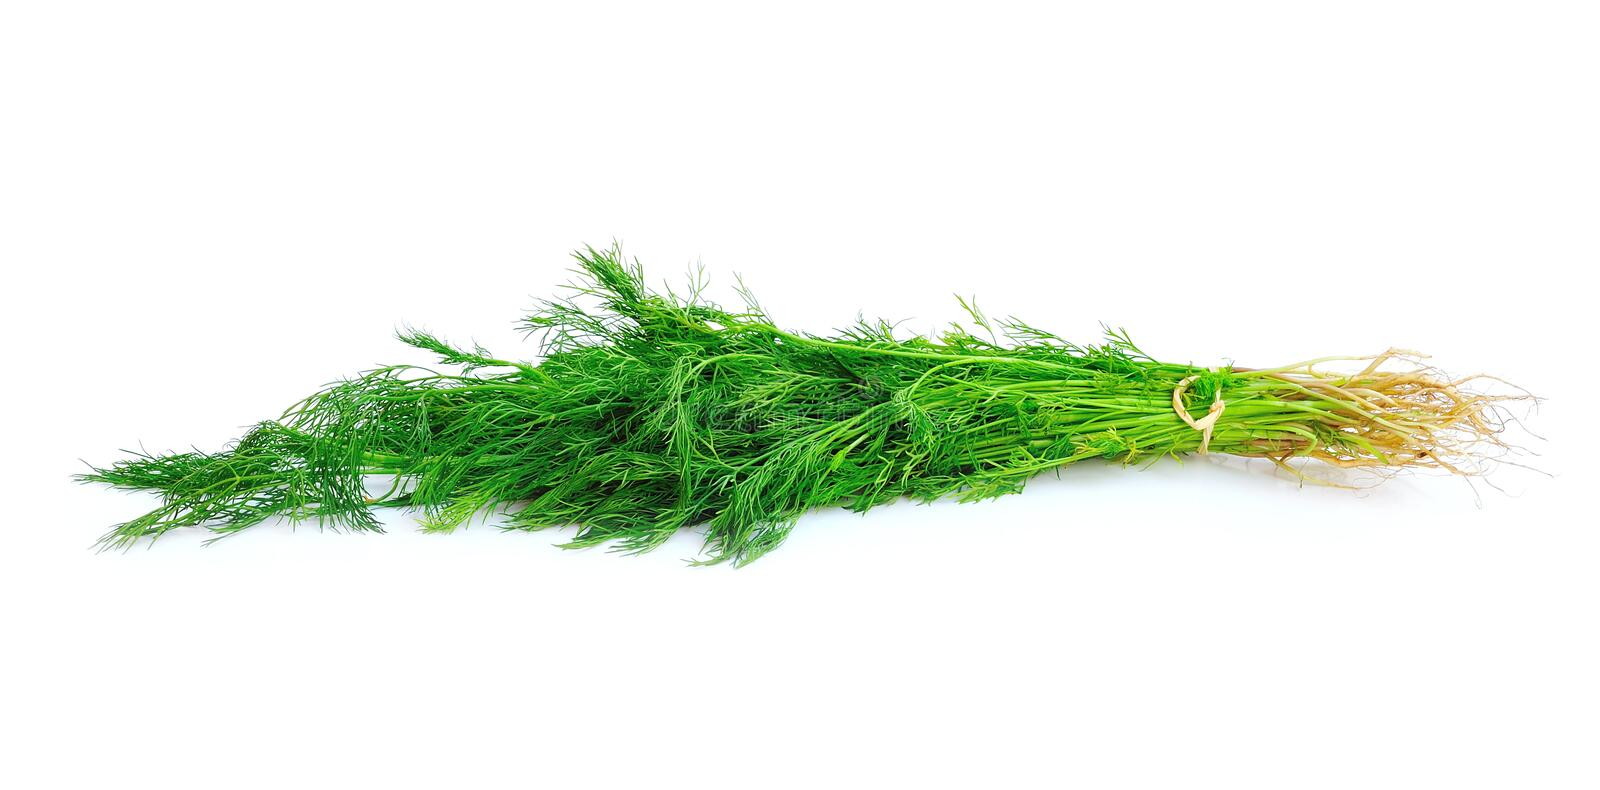 Fennel Bunch Royalty Free Stock Photos